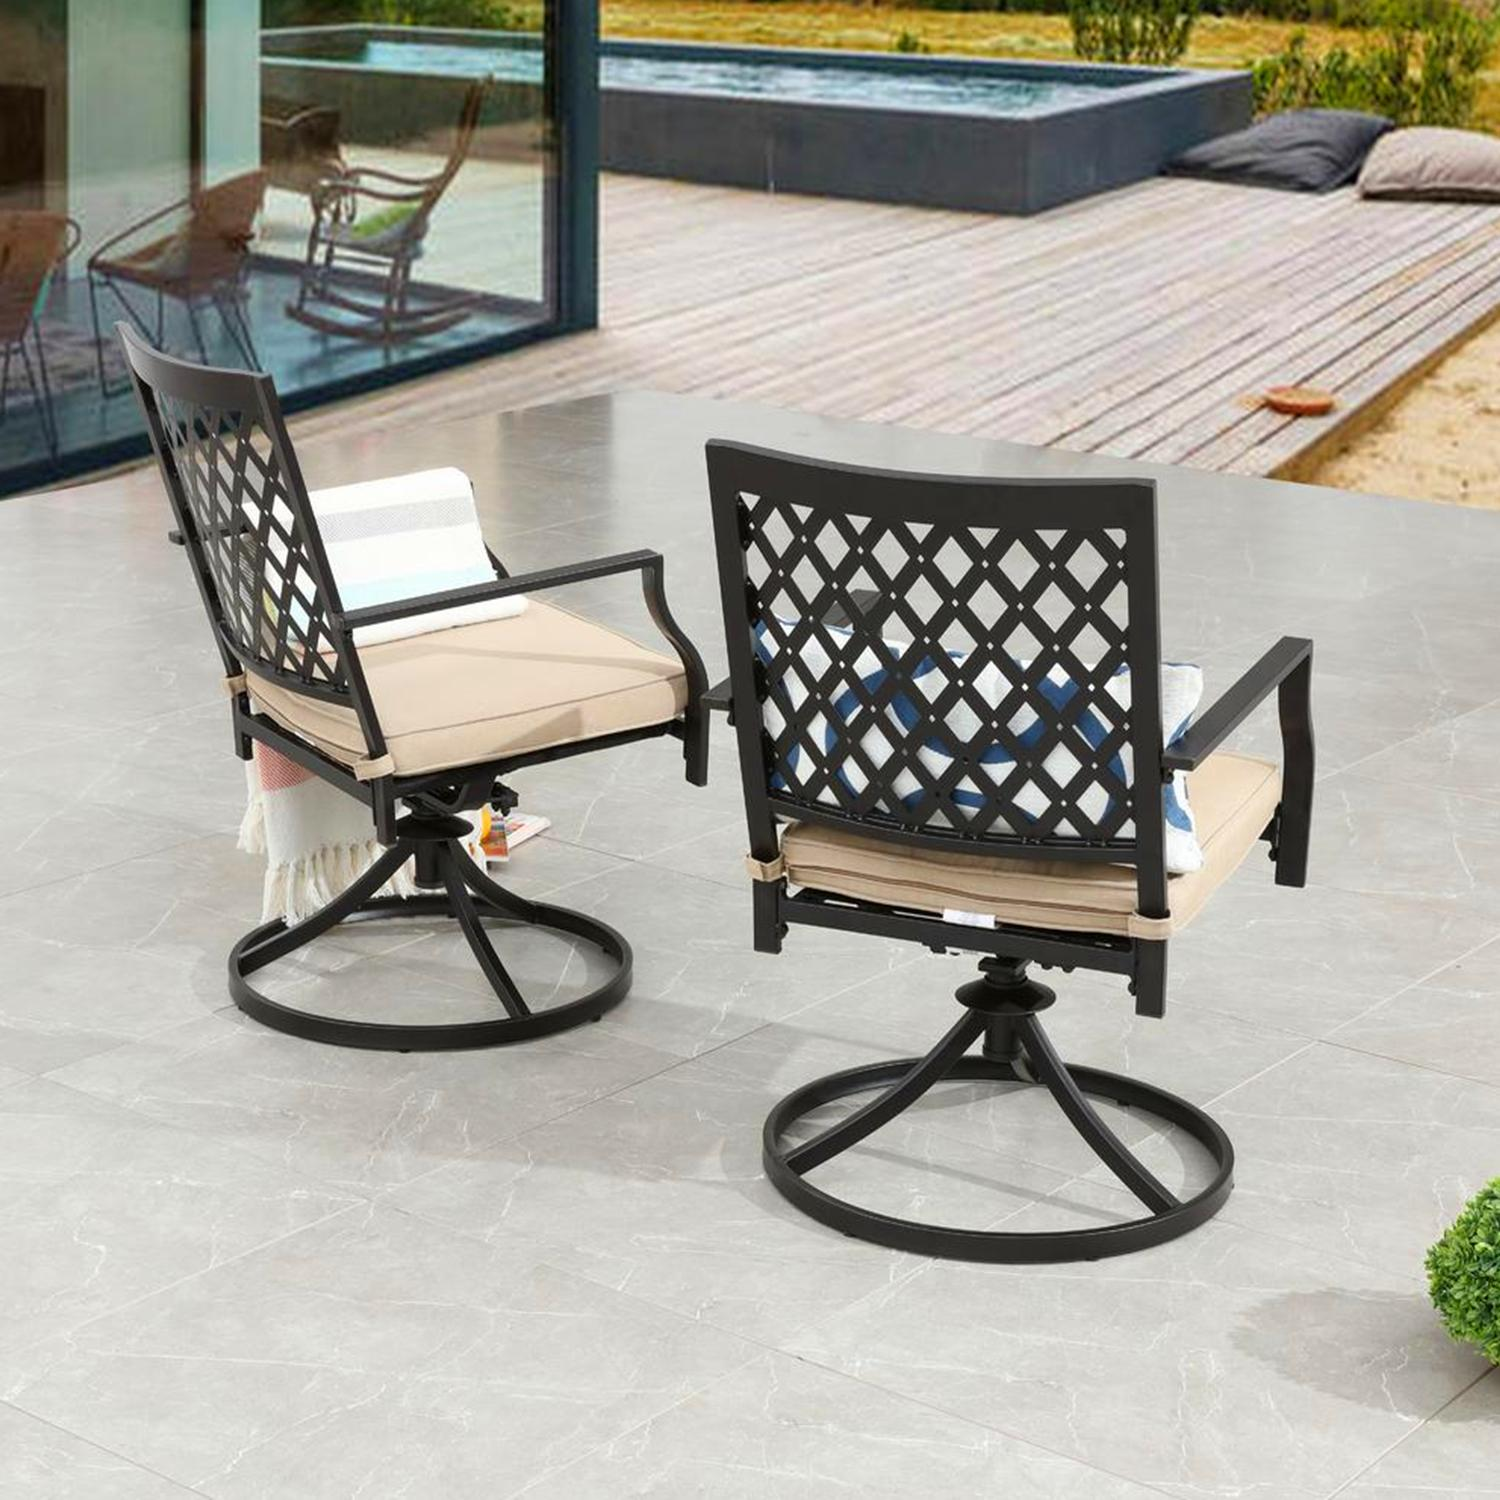 of Swivel Dining Chairs Outdoor Furniture